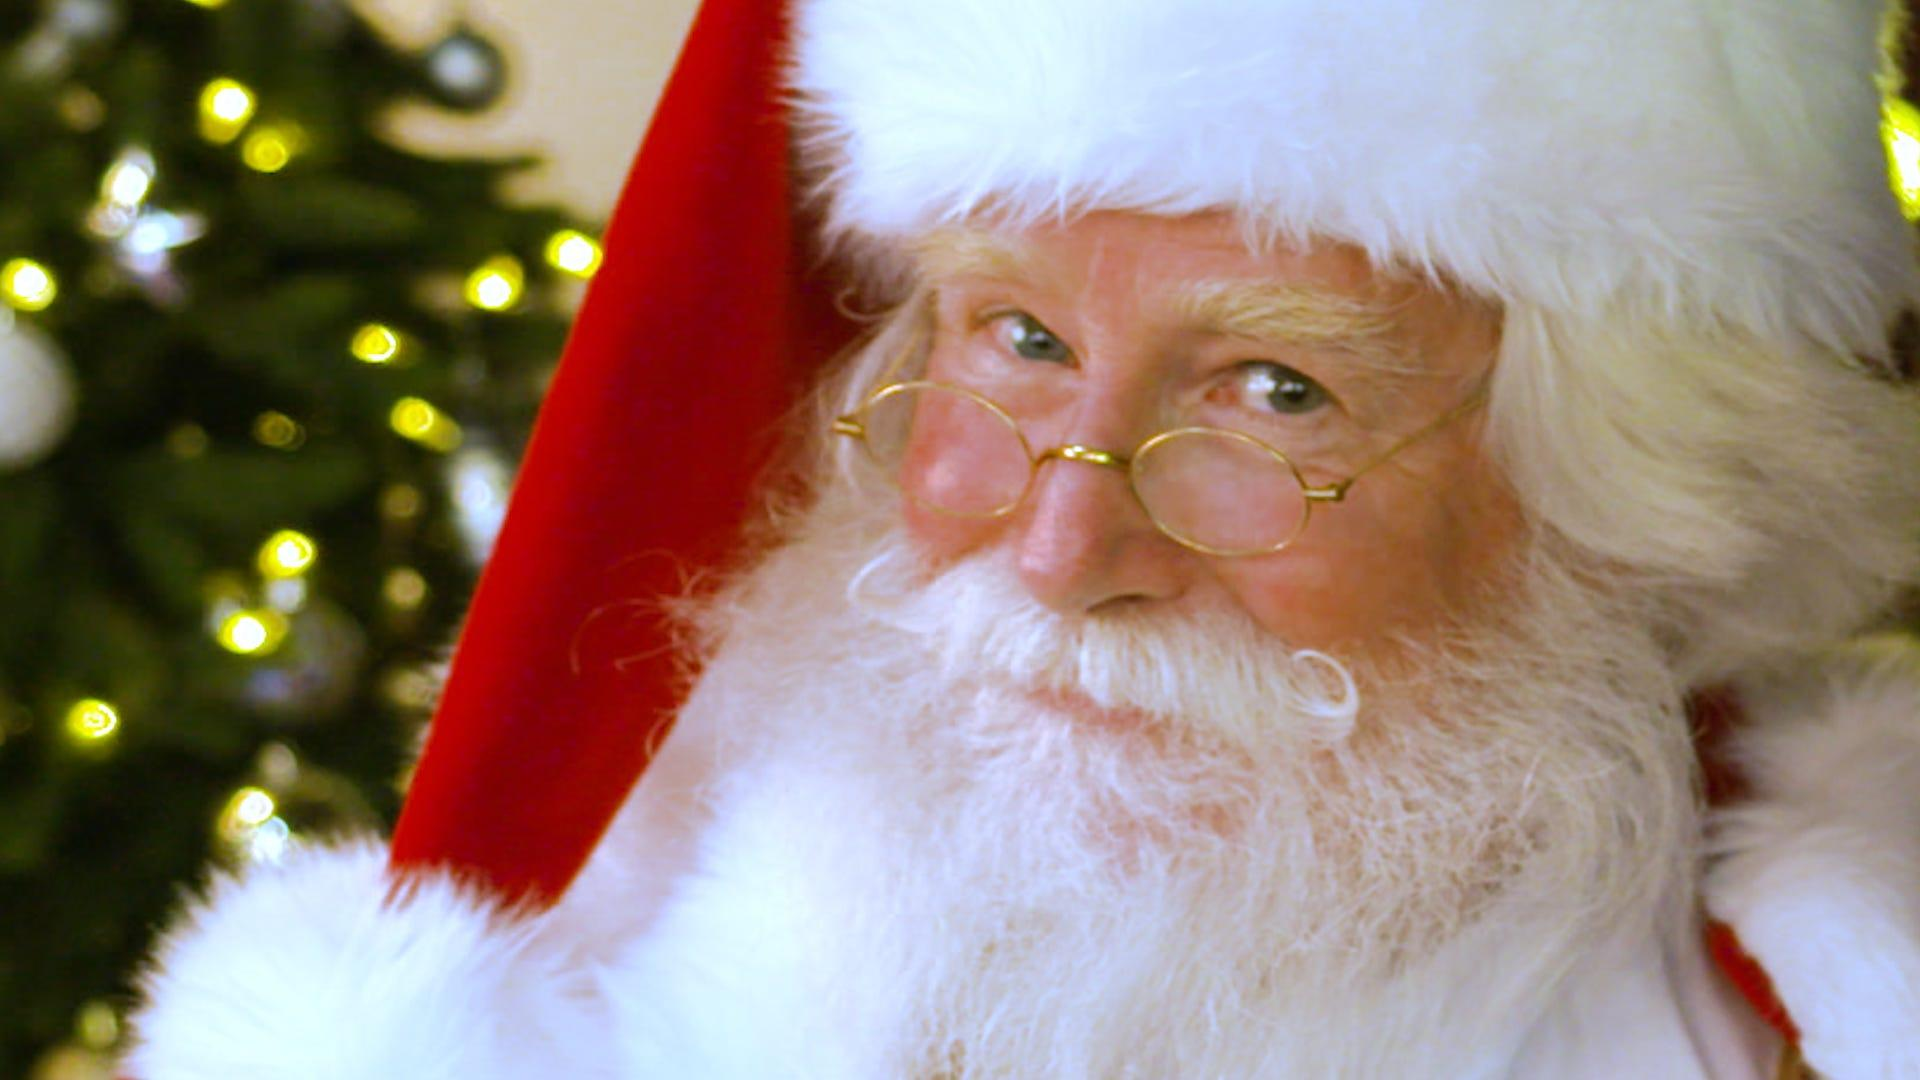 Stock Market Christmas Gifts 2020 Santa is ready to give investors a late gift with a stock market